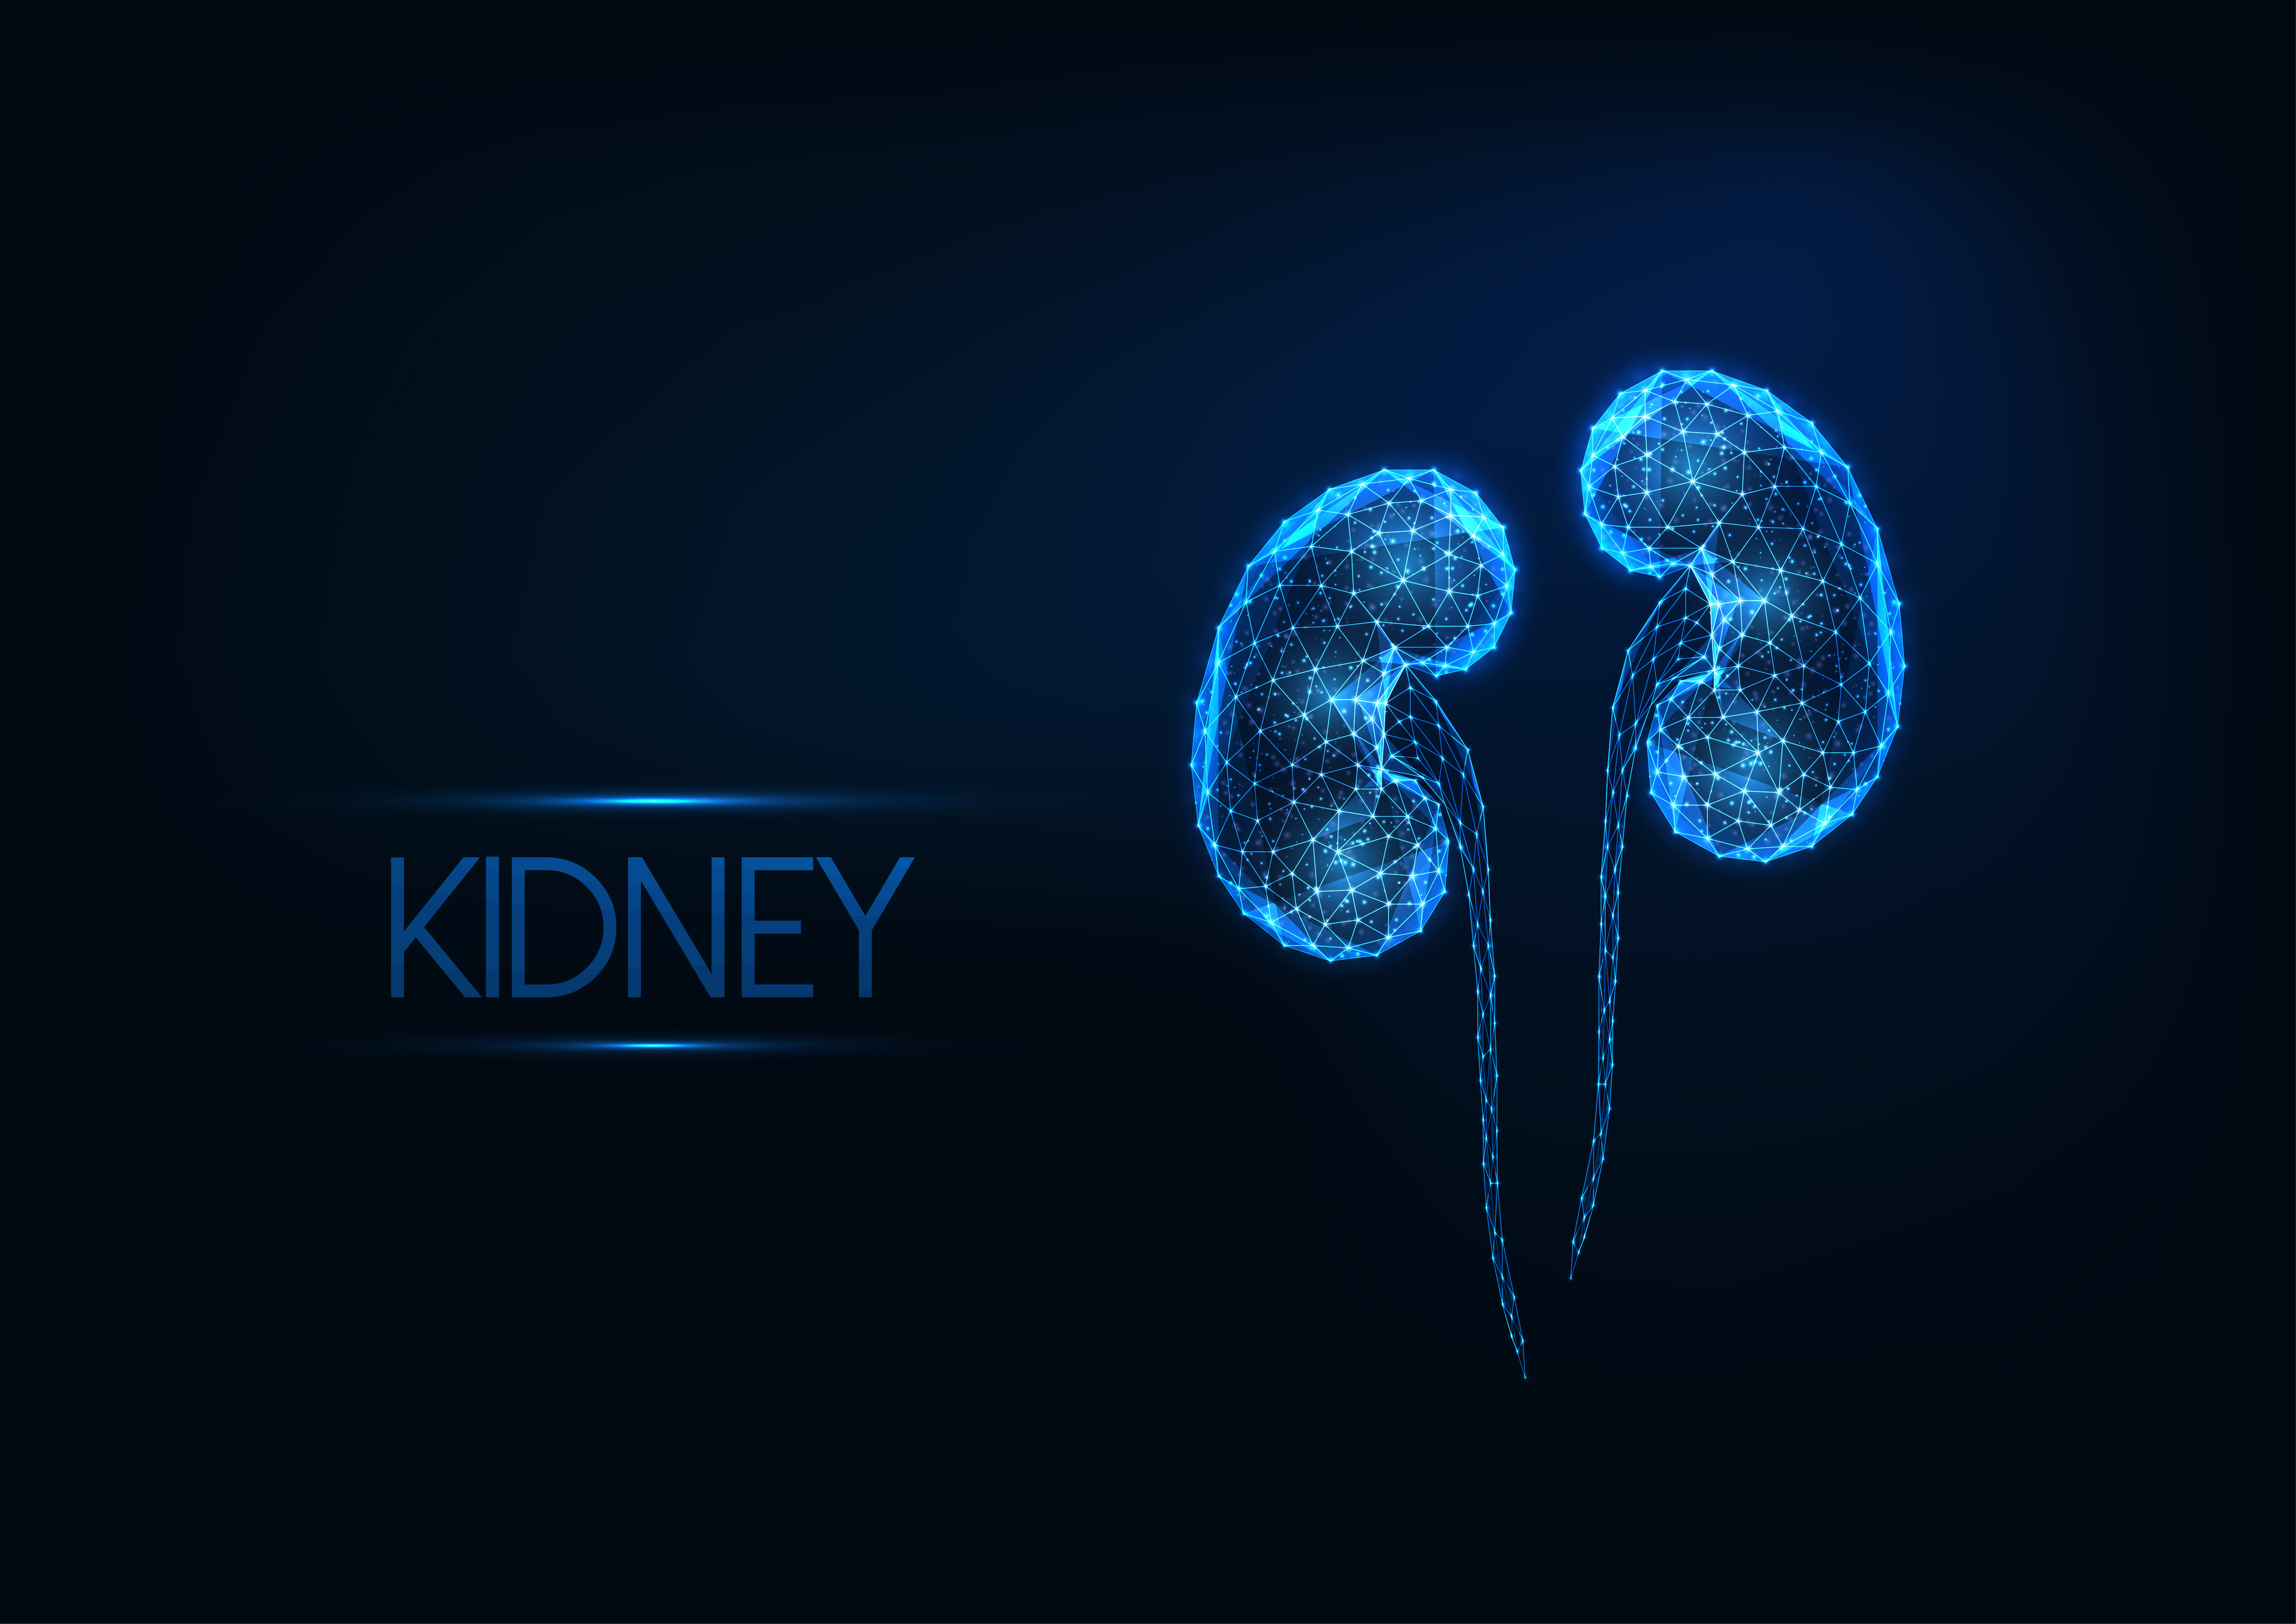 Kidney Tumours - The Facts